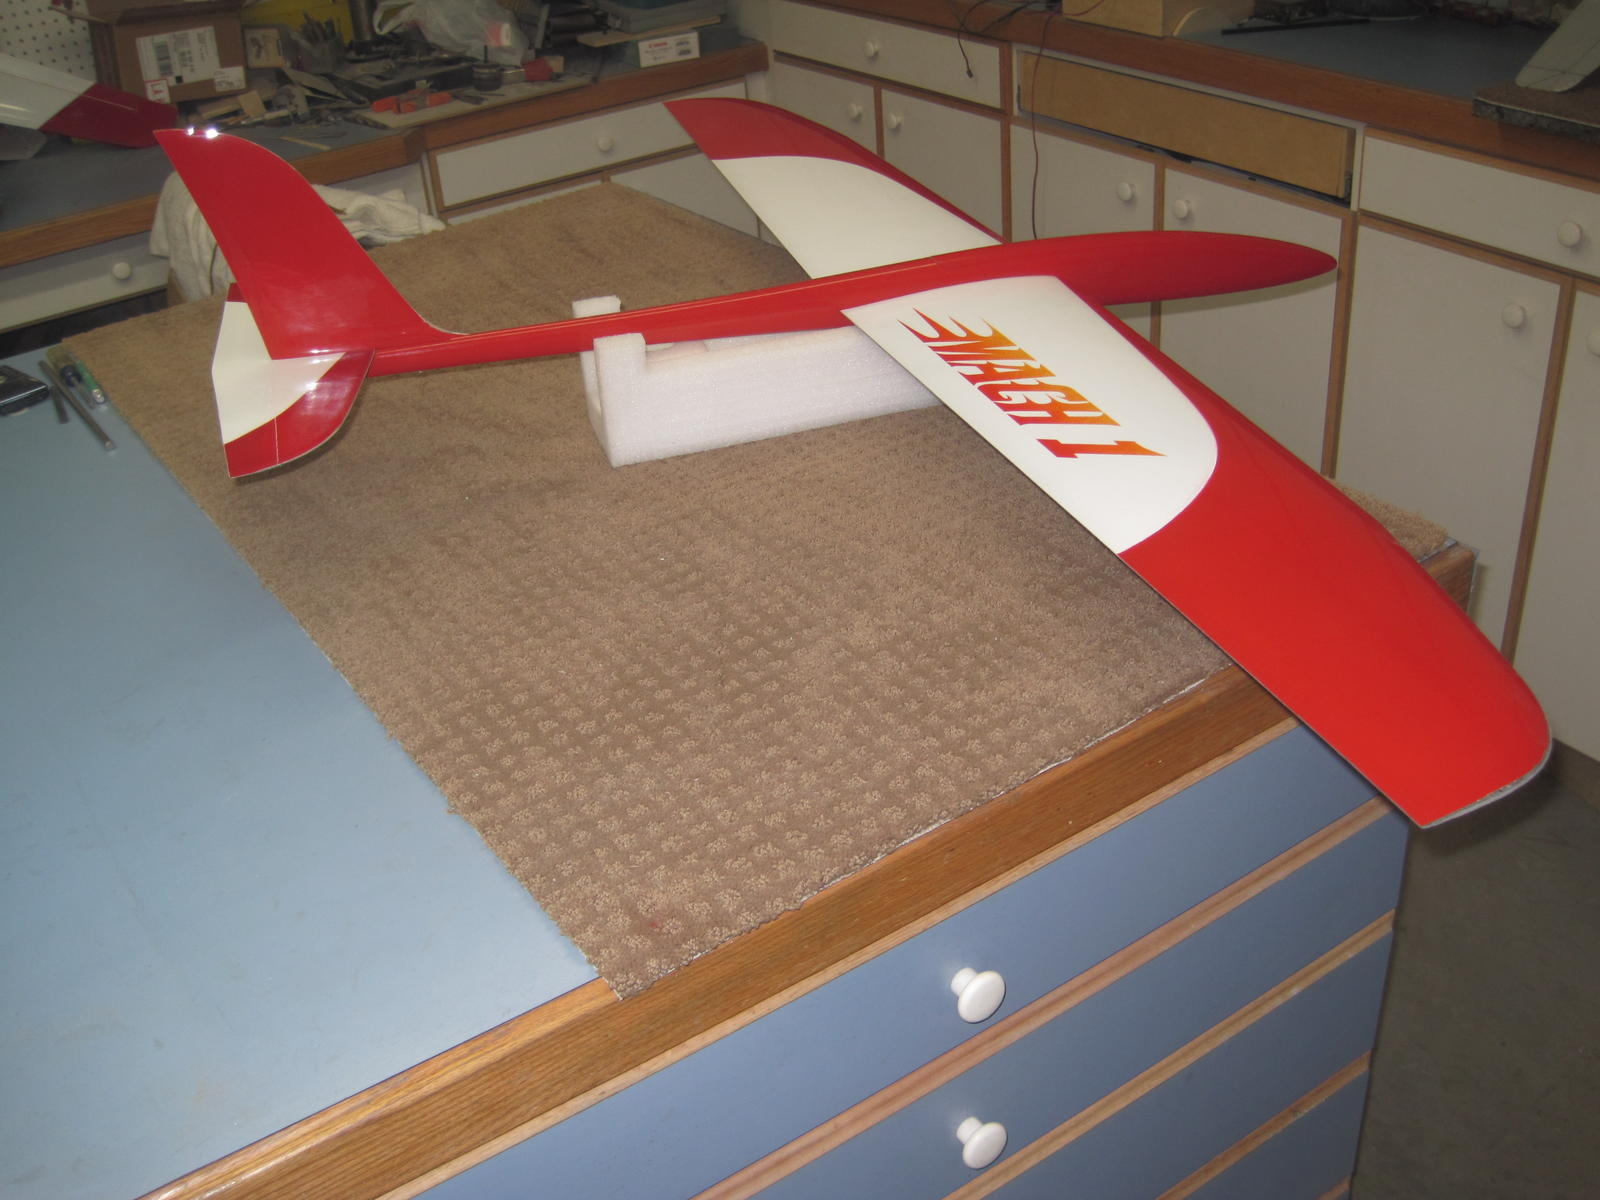 Matt's plane with no canopy